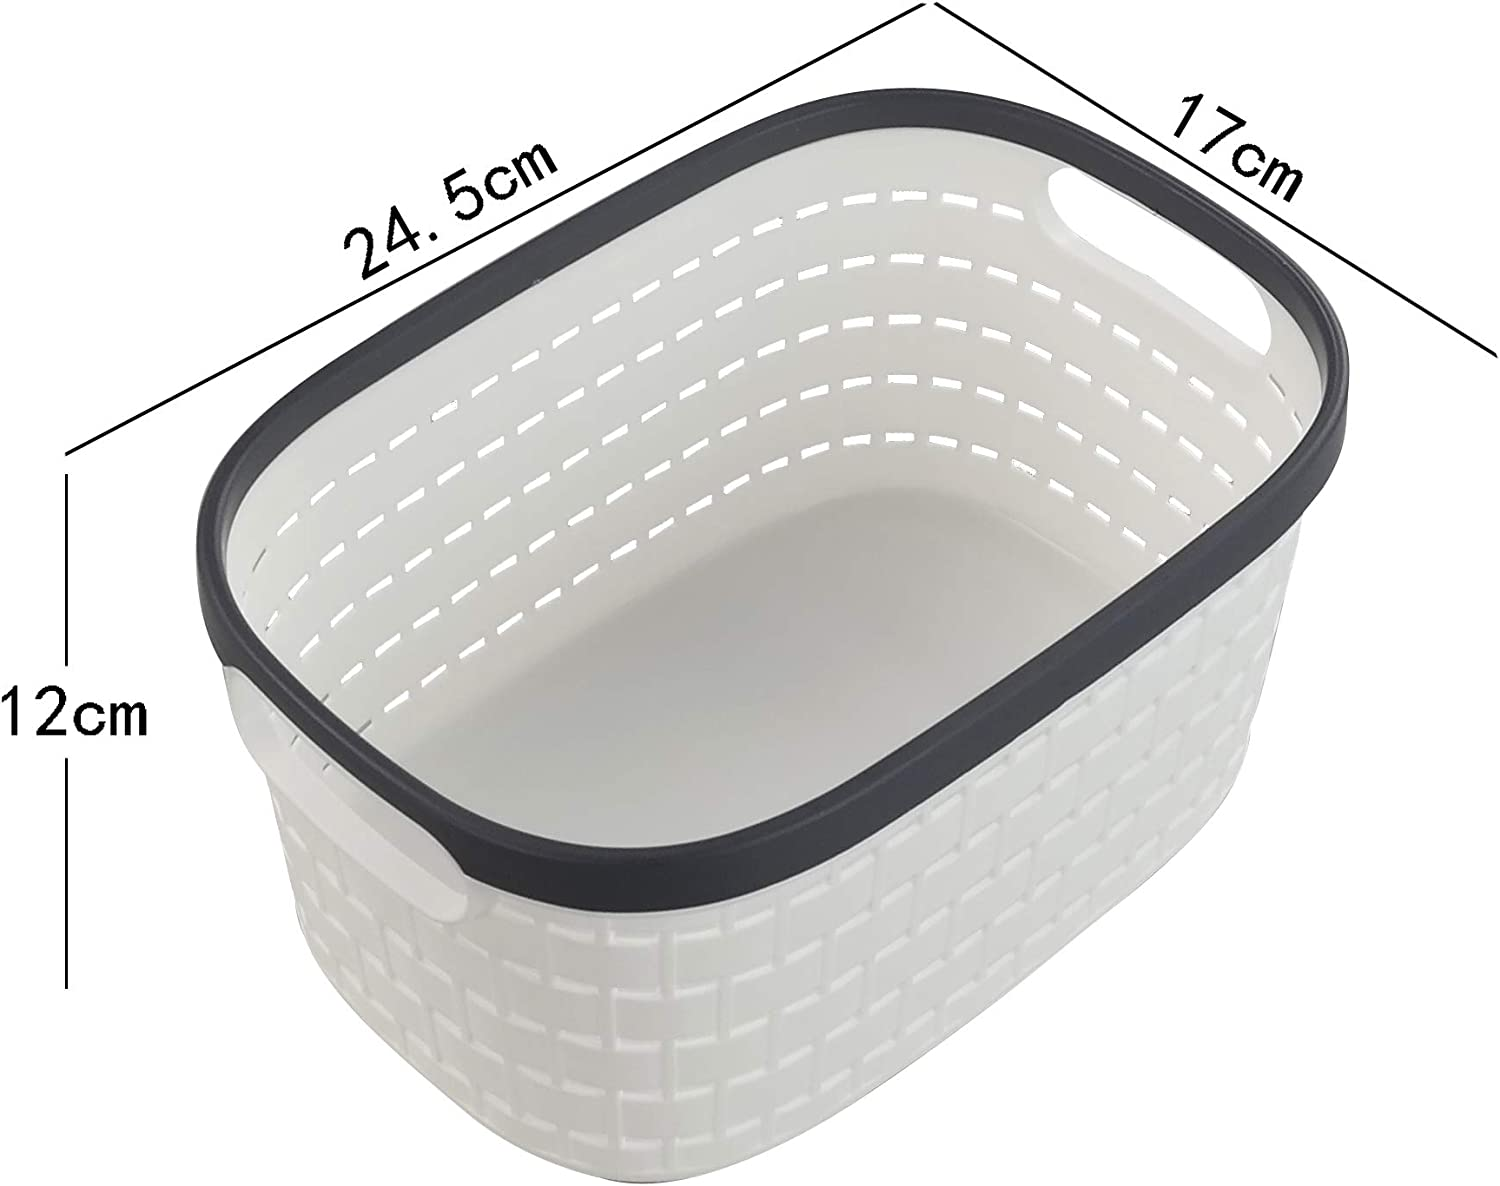 Fosly 6-pack White Small Handy Plastic Storage Baskets with Grey Frame